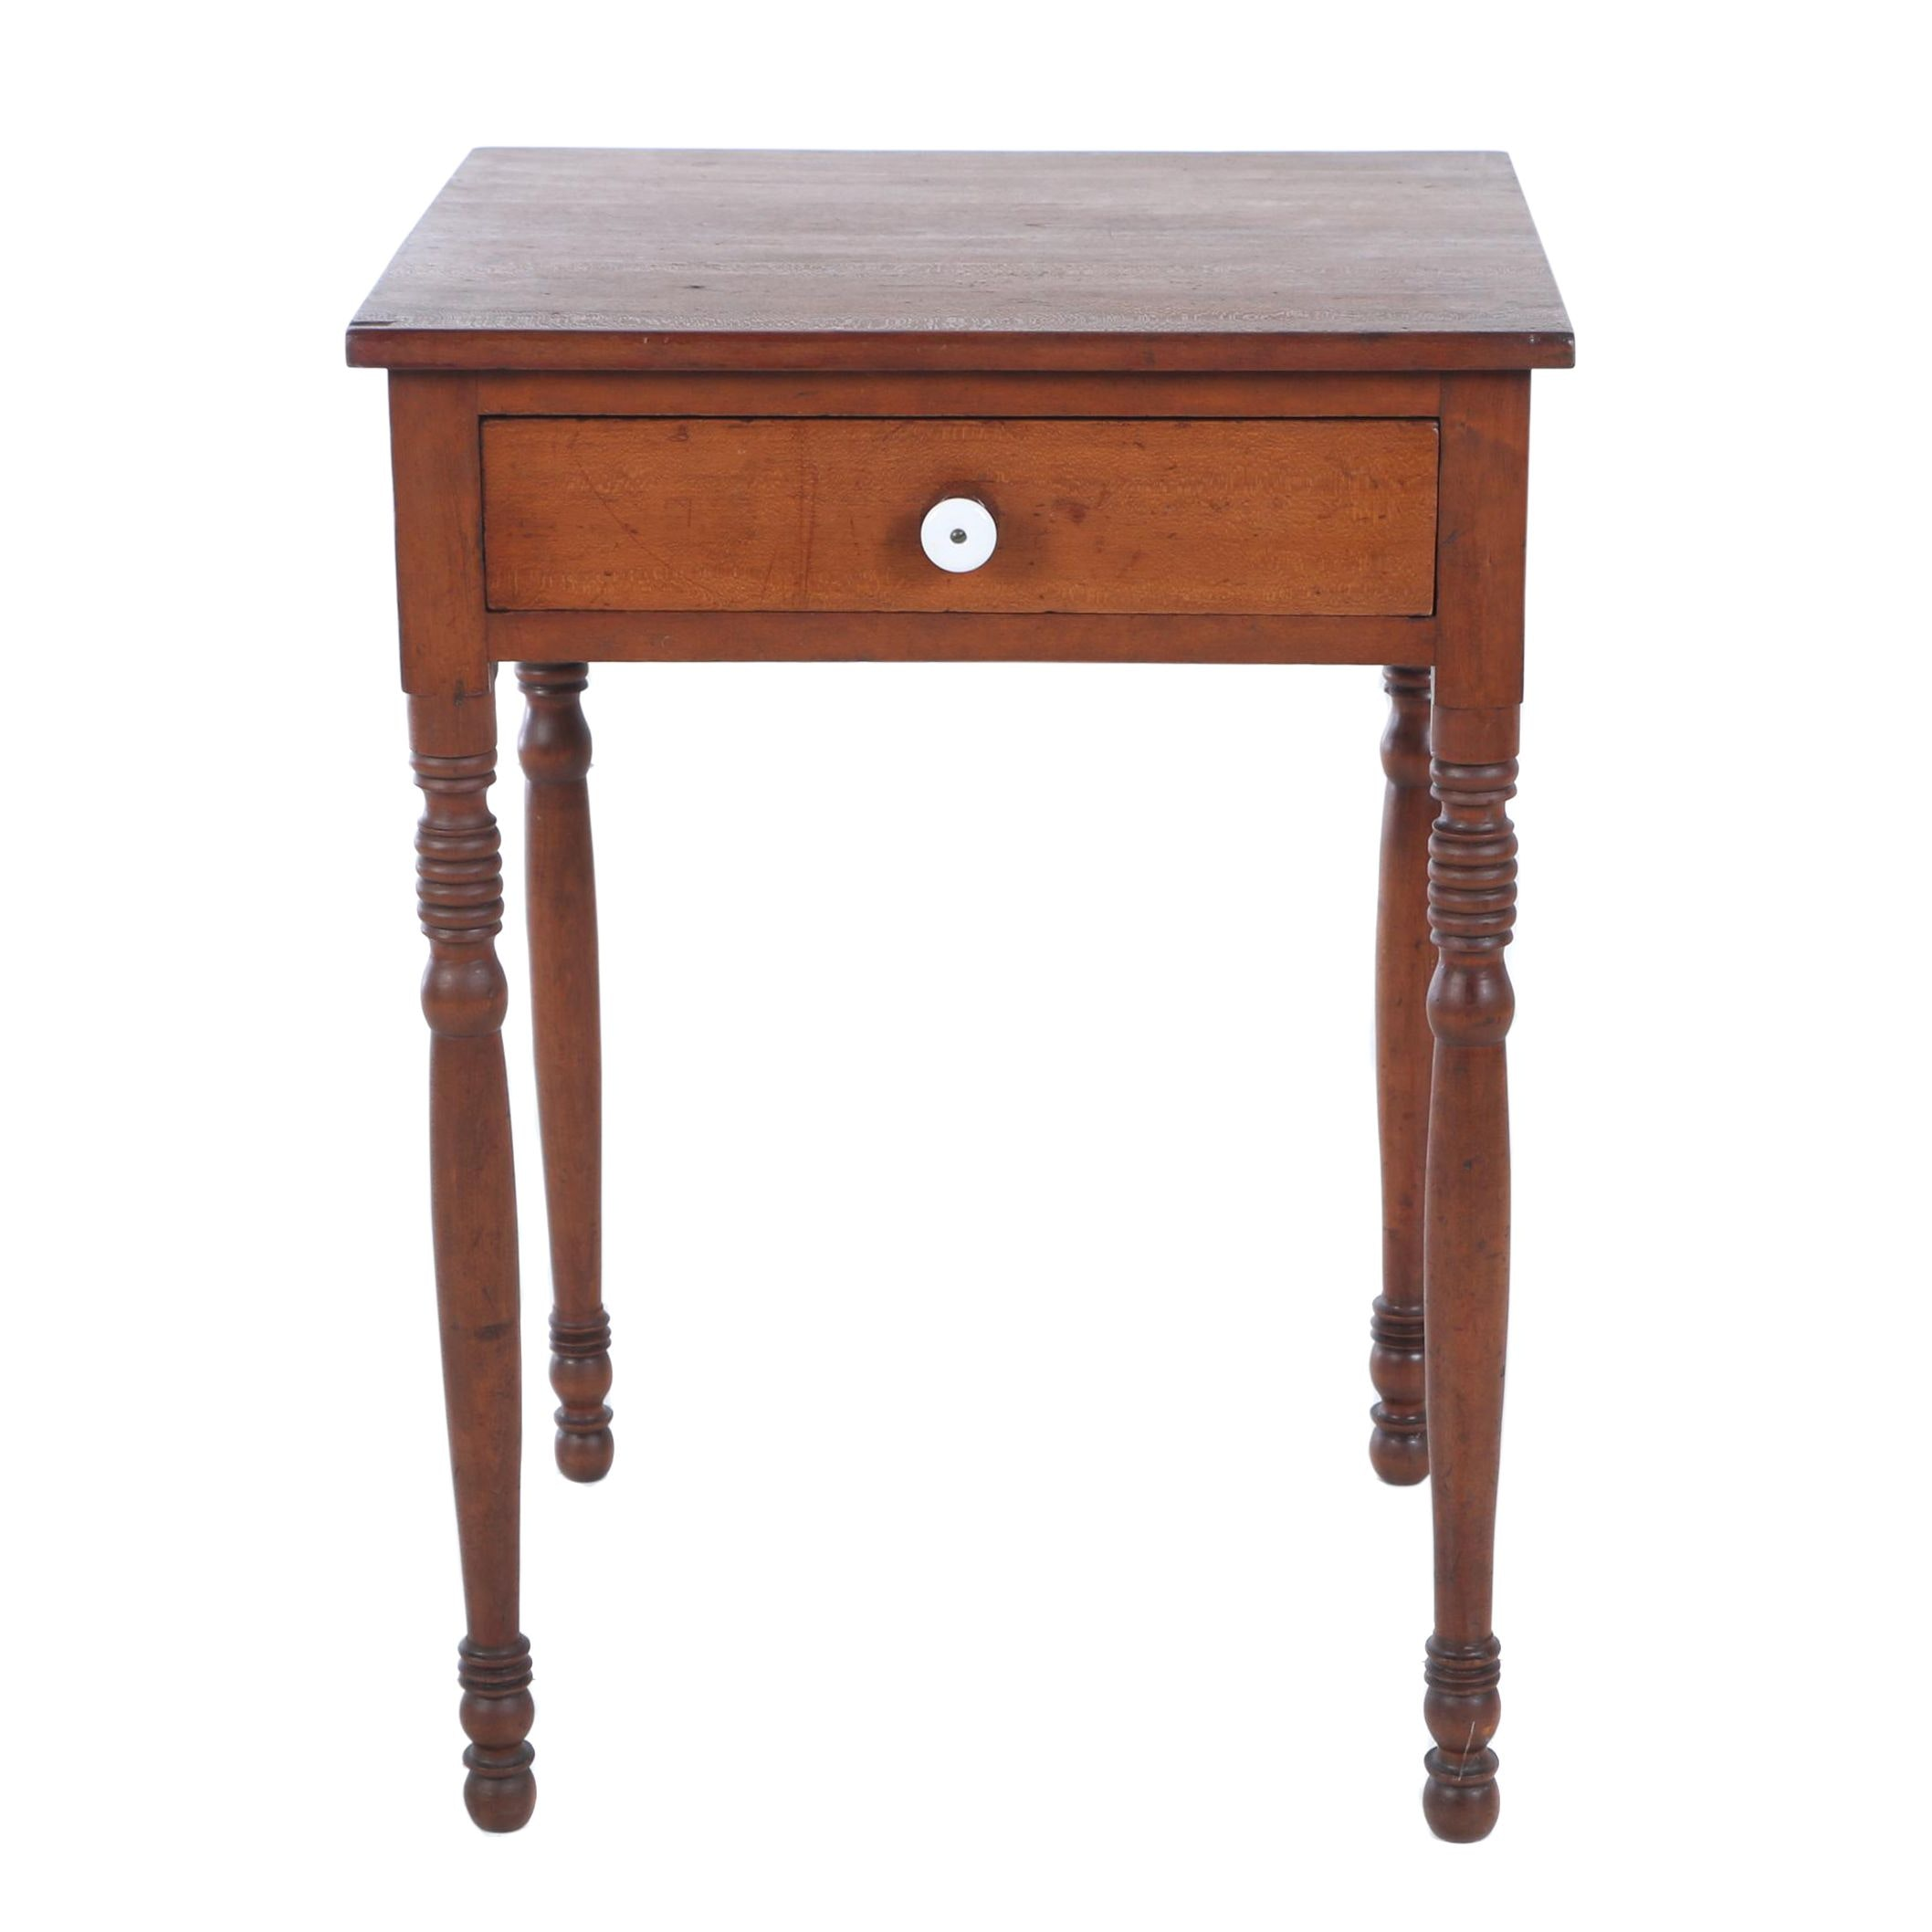 American Cherrywood One-Drawer Side Table, 19th Century